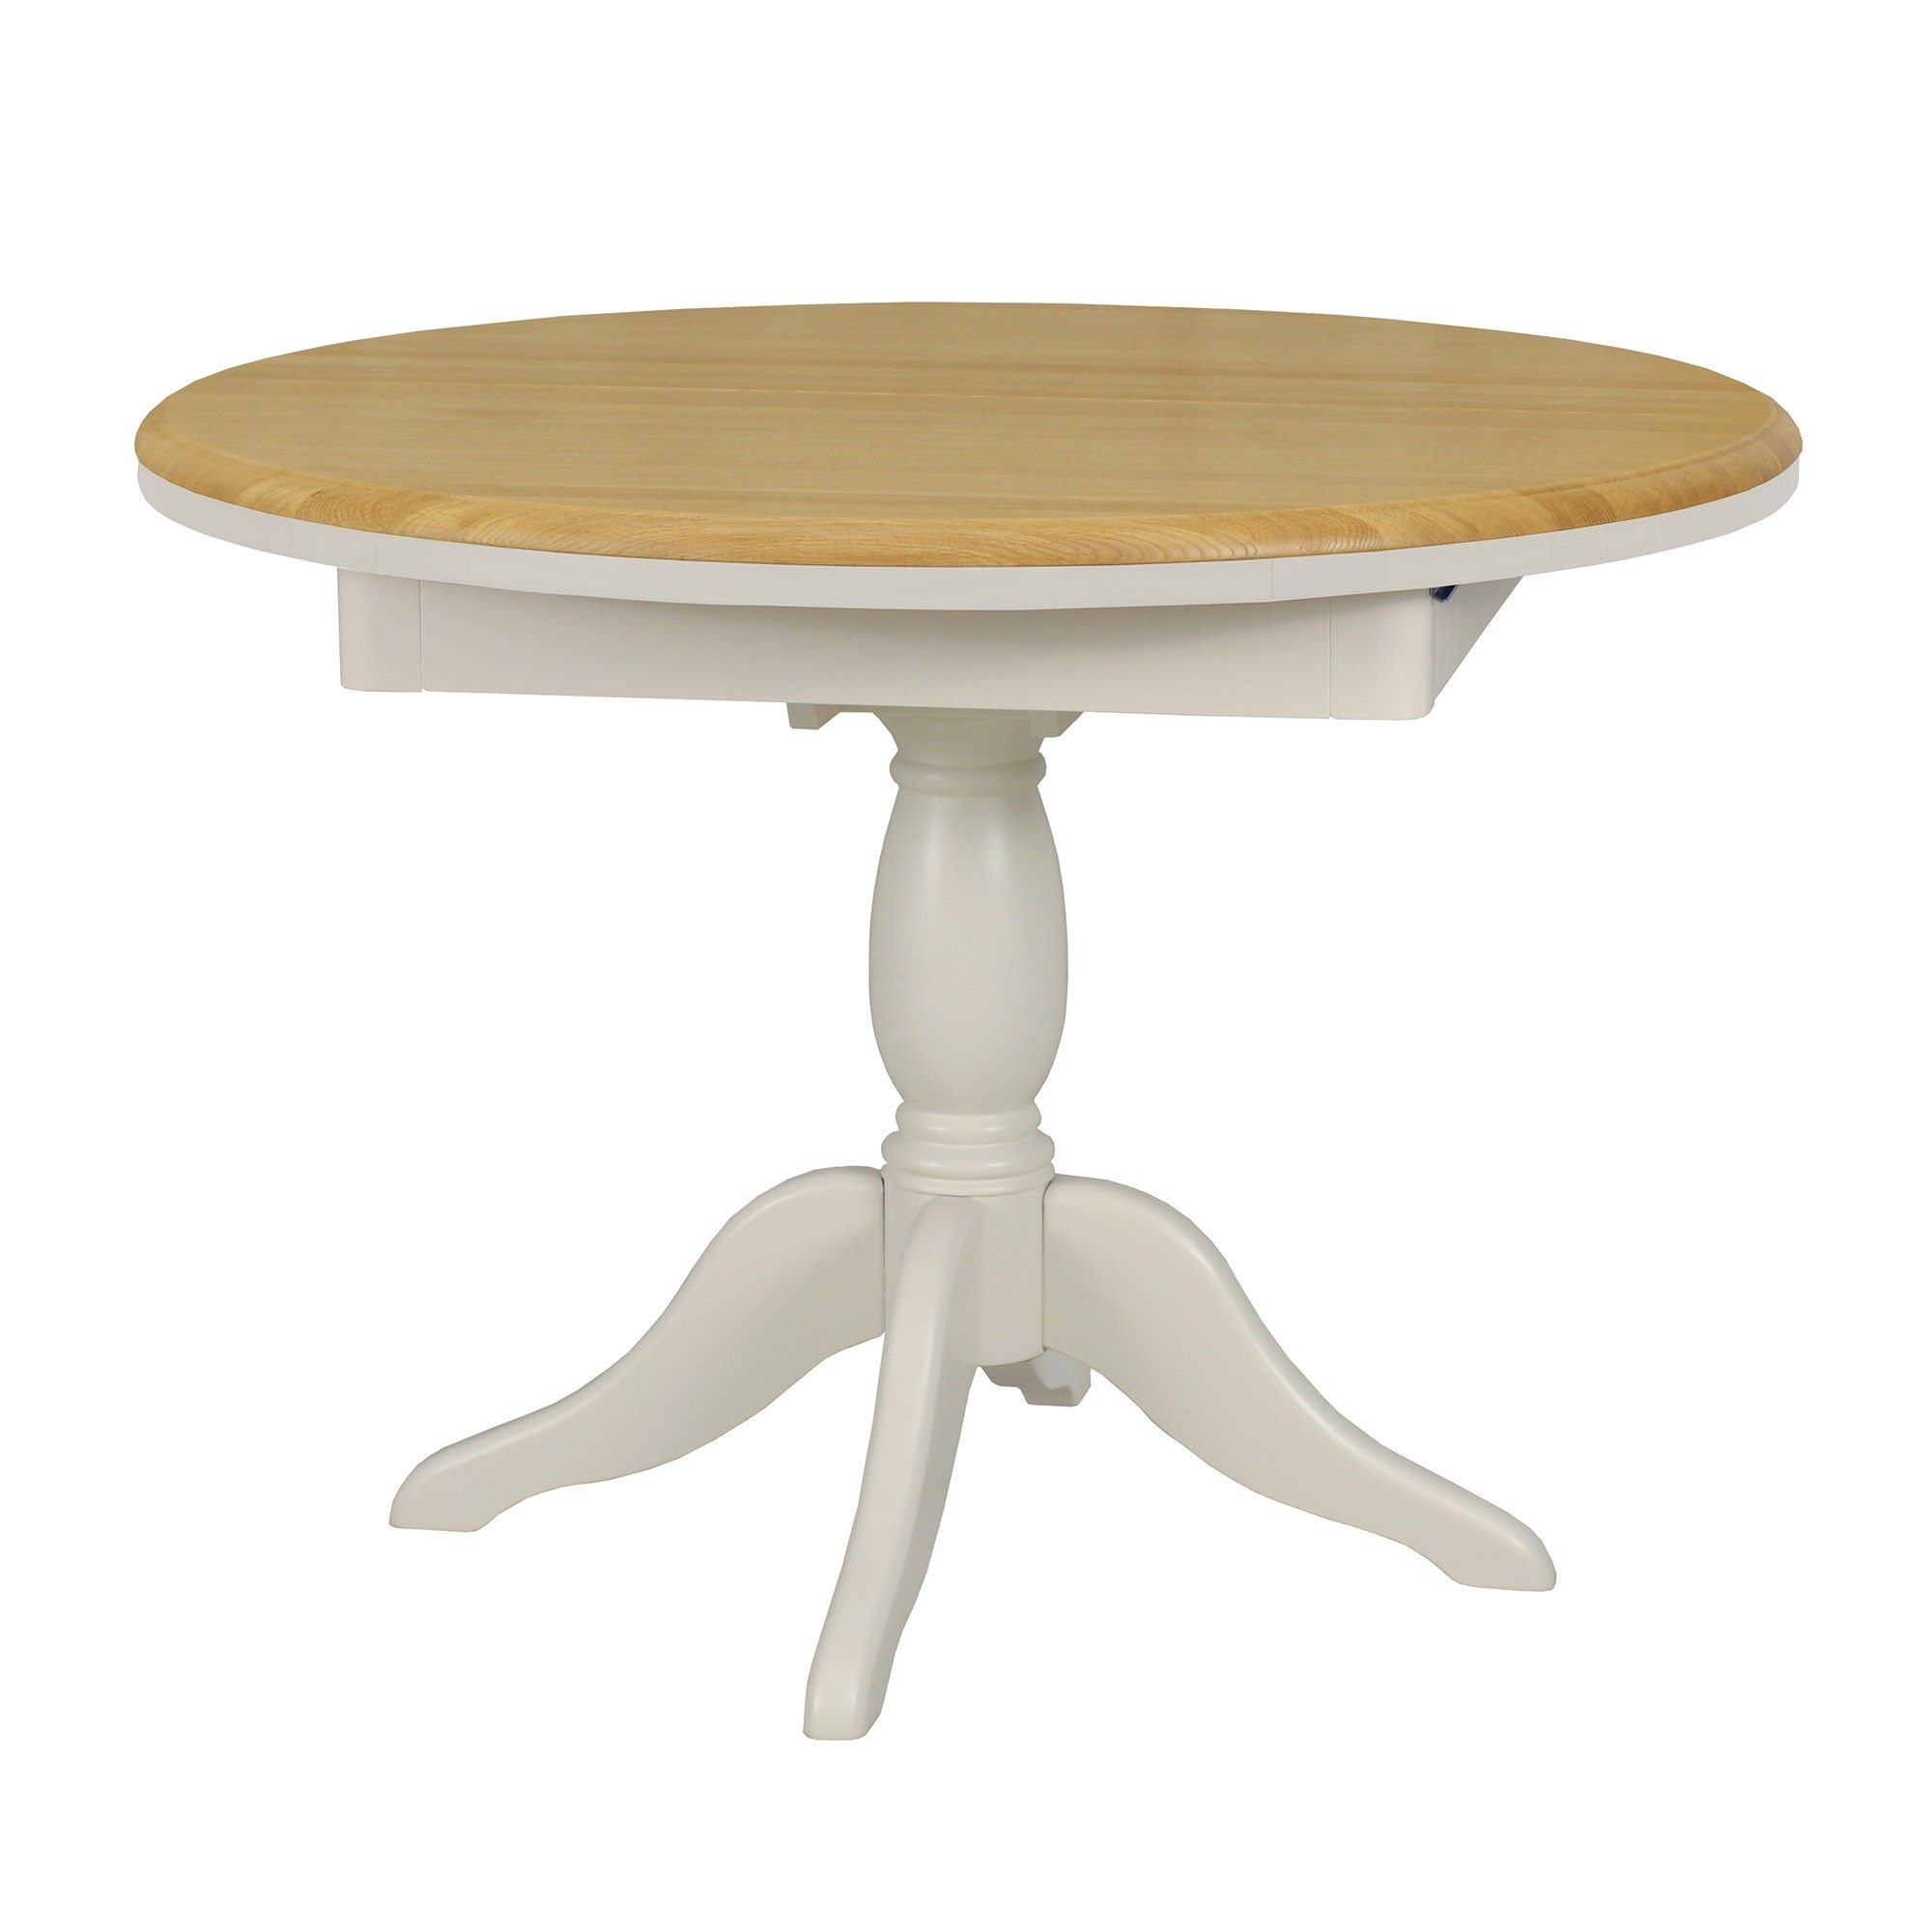 Round Extending Oak Dining Tables And Chairs Intended For Preferred Olivia Oak/painted 103 106 145Cm Round Extending Dining Table (View 19 of 25)